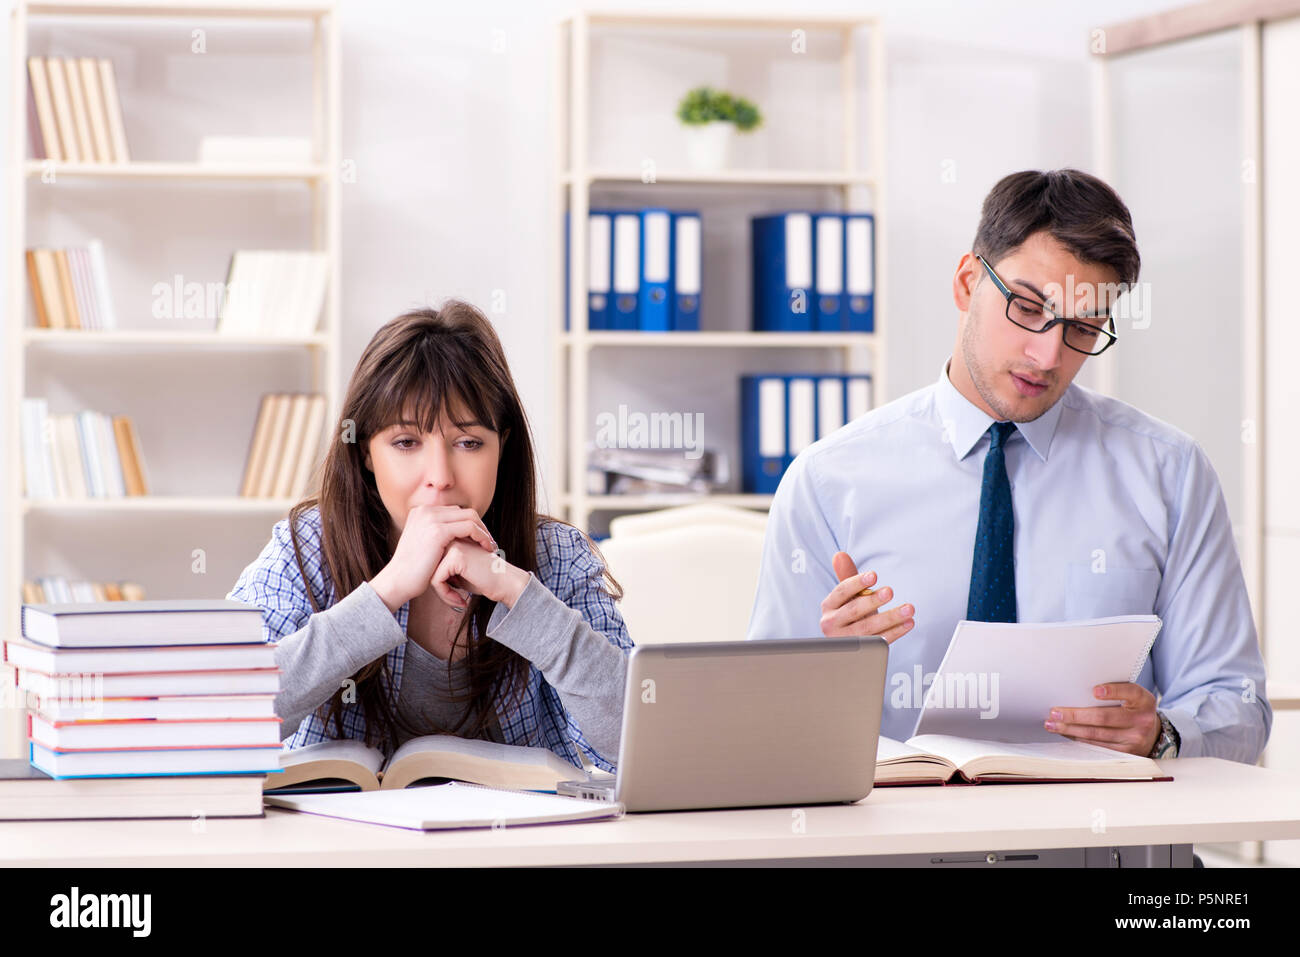 University Exam Invigilator Stock Photos   University Exam     Male lecturer giving lecture to female student   Stock Image